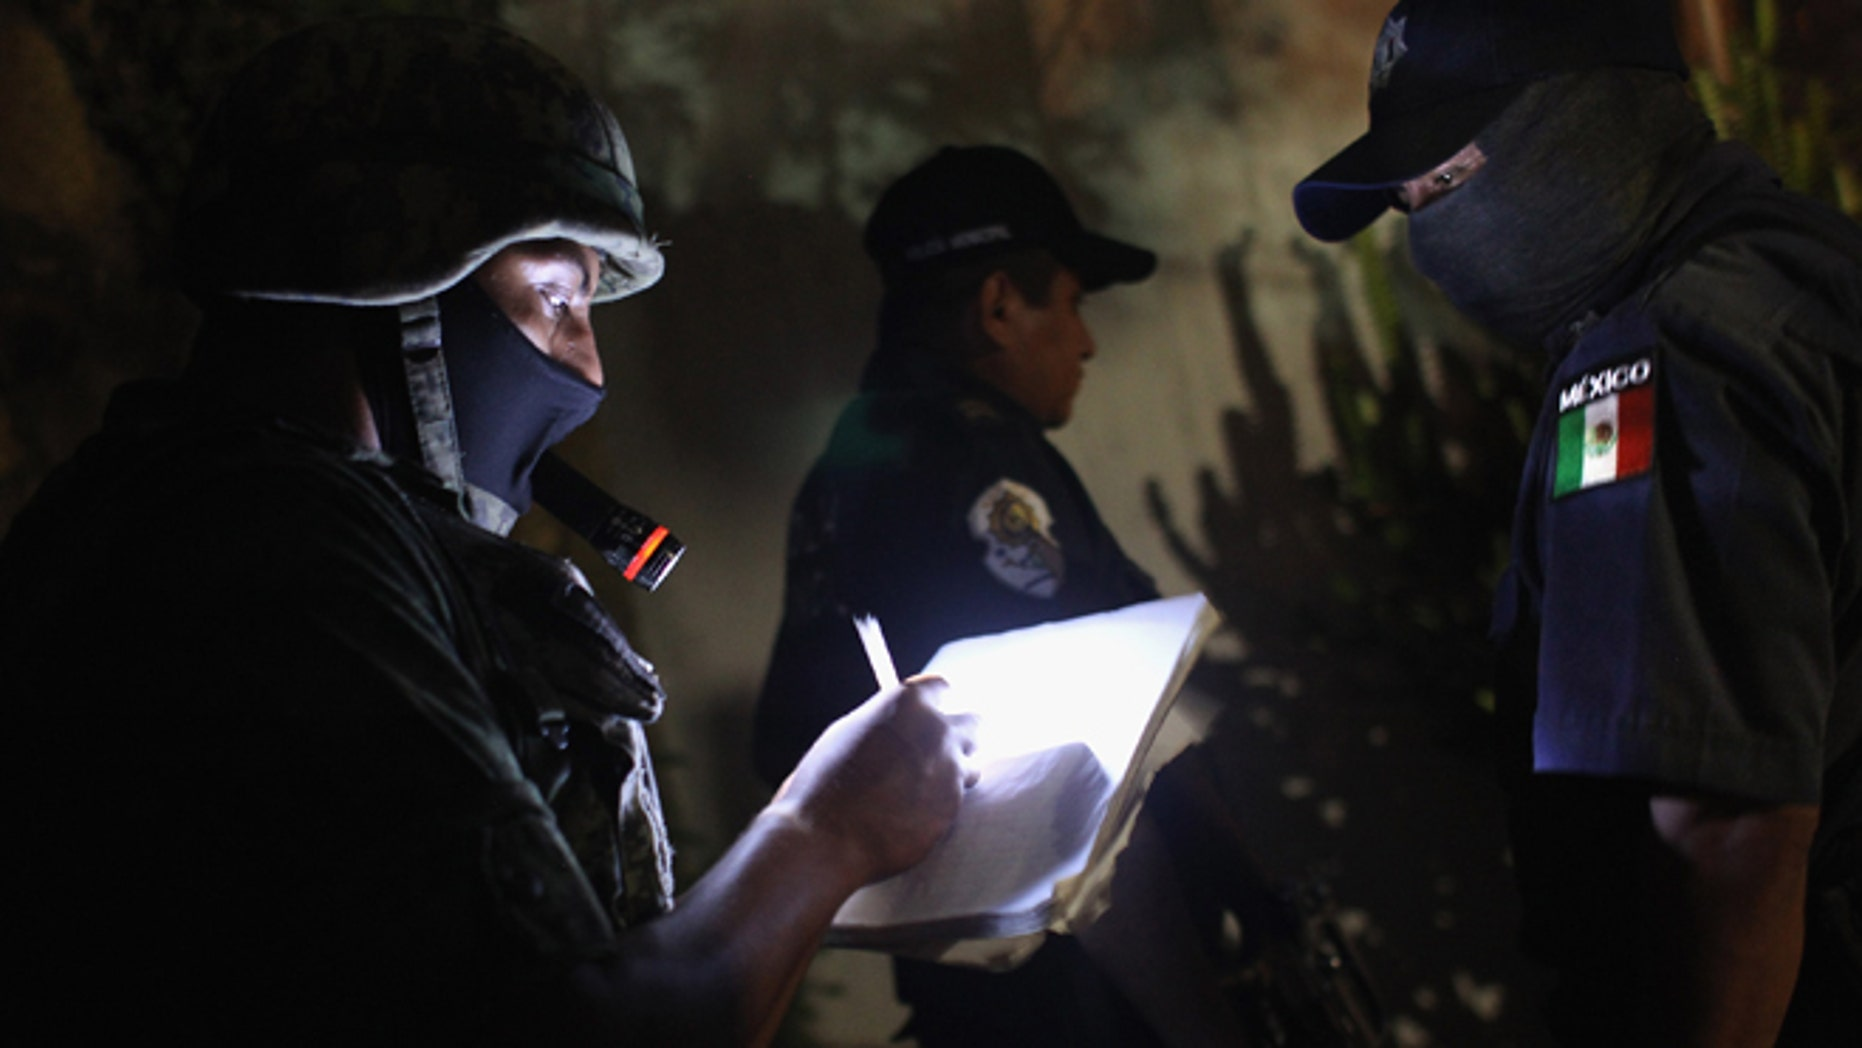 ACAPULCO, MEXICO - MARCH 03:  A Mexican soldier takes notes at a suspected drug-related murder site late March 3, 2012 in Acapulco, Mexico. A forensics team excavated five corpses from the floor of an abandoned house. Officials said the five victims were apparently buried alive in concrete. Drug violence has surged in the coastal resort in the last year, making Acapulco the second most deadly city in Mexico after Juarez. One of Mexico's top tourist destinations, Acapulco has suffered a drop in business, especially from foreign tourists, due to the violence. Toursim accounts for about 70 percent of the economy of Acapulco's state of Guerrero and 9 percent of Mexico's economy.  (Photo by John Moore/Getty Images)